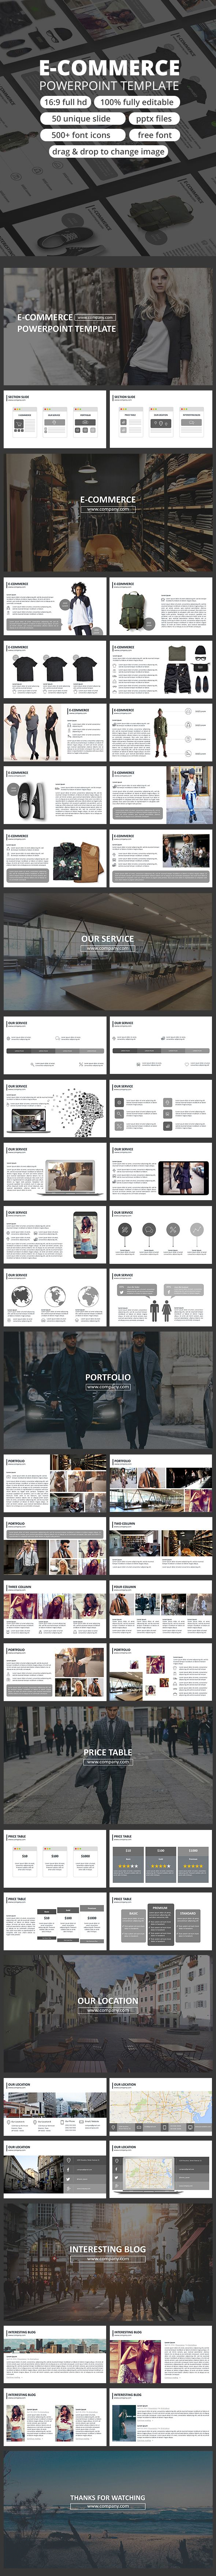 E-commerce - Powerpoint Presentation Template. Download here: http://graphicriver.net/item/ecommerce-powerpoint-presentation/15865999?ref=ksioks